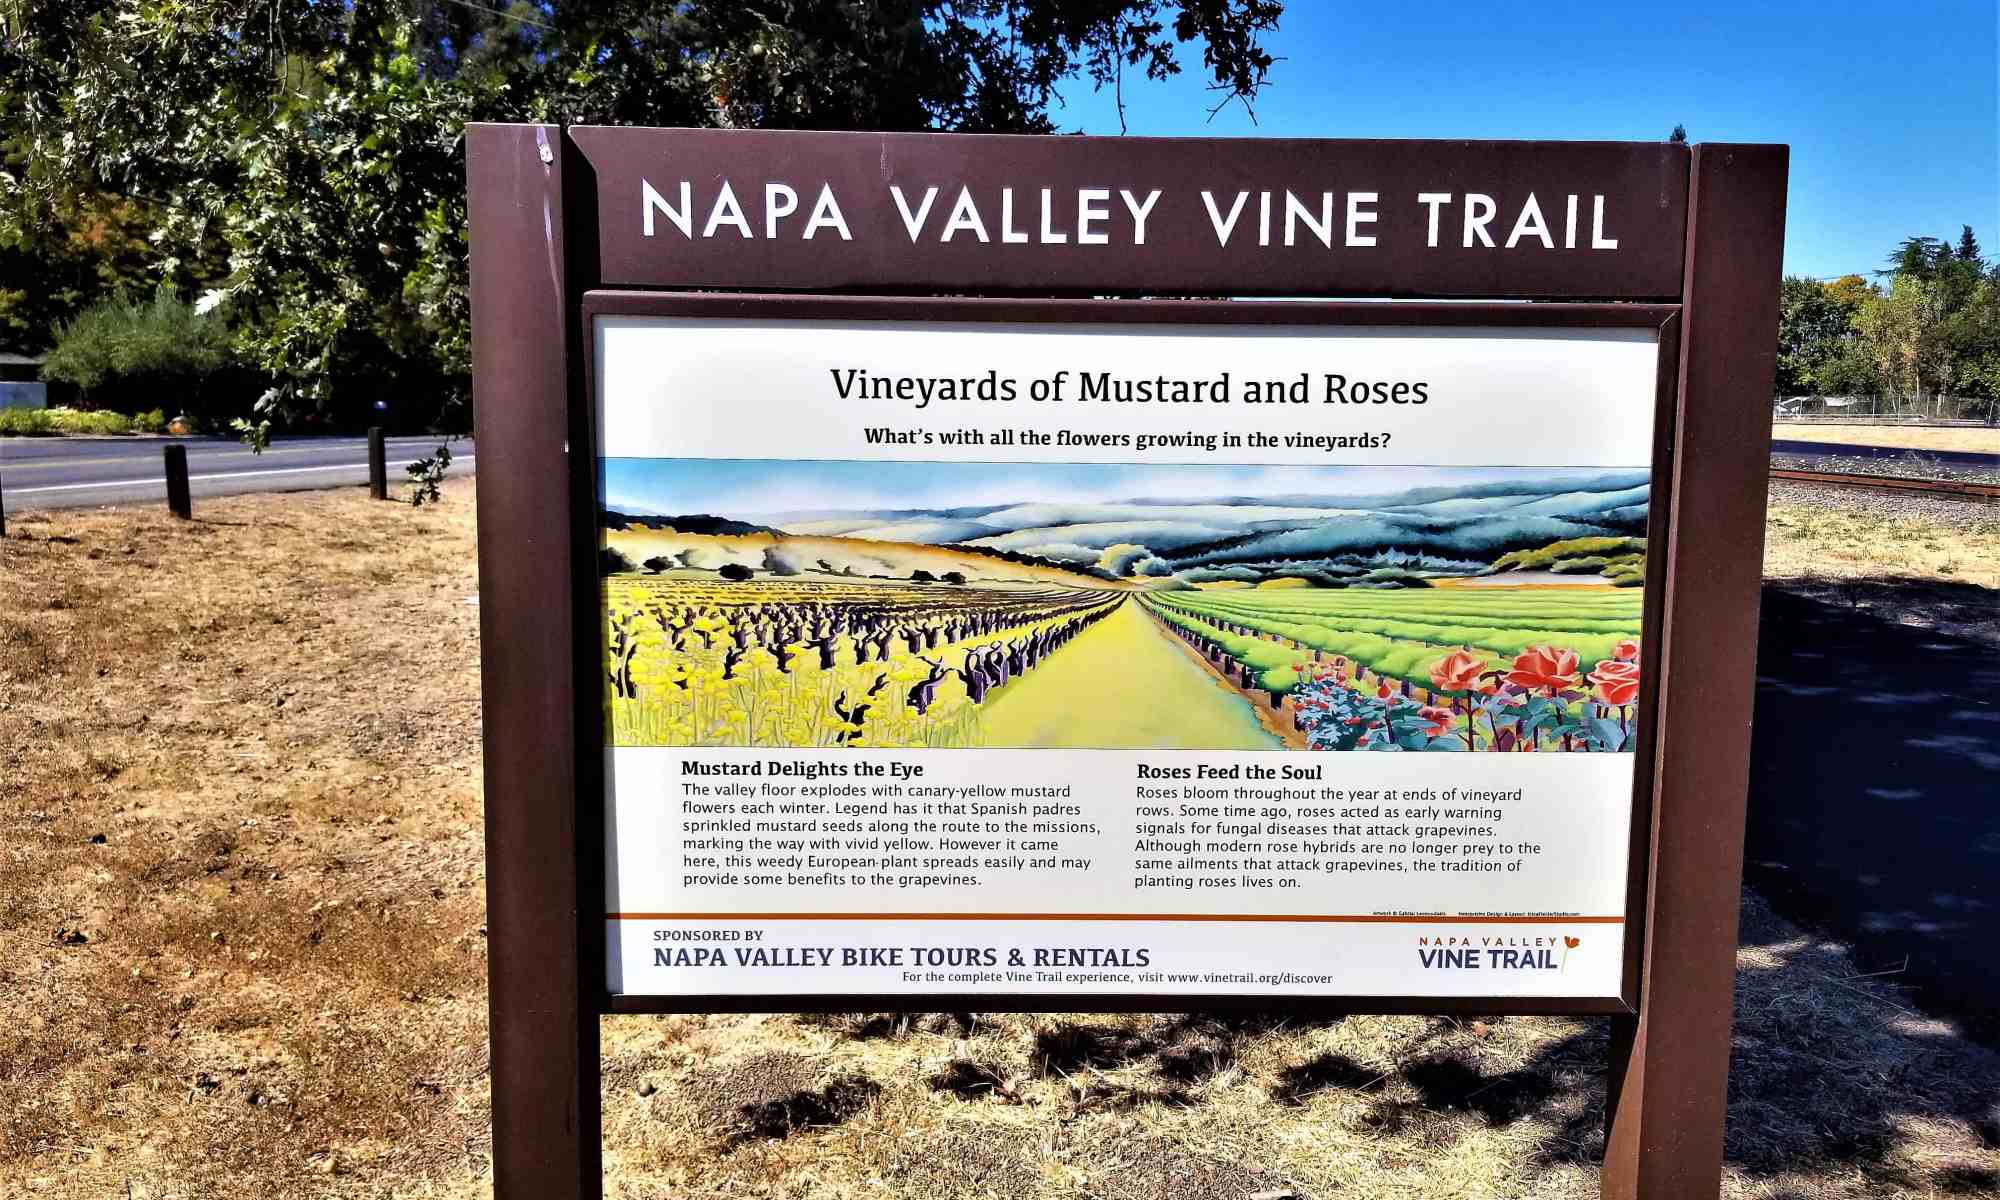 image-of-napa-valley-vine-trail-signage